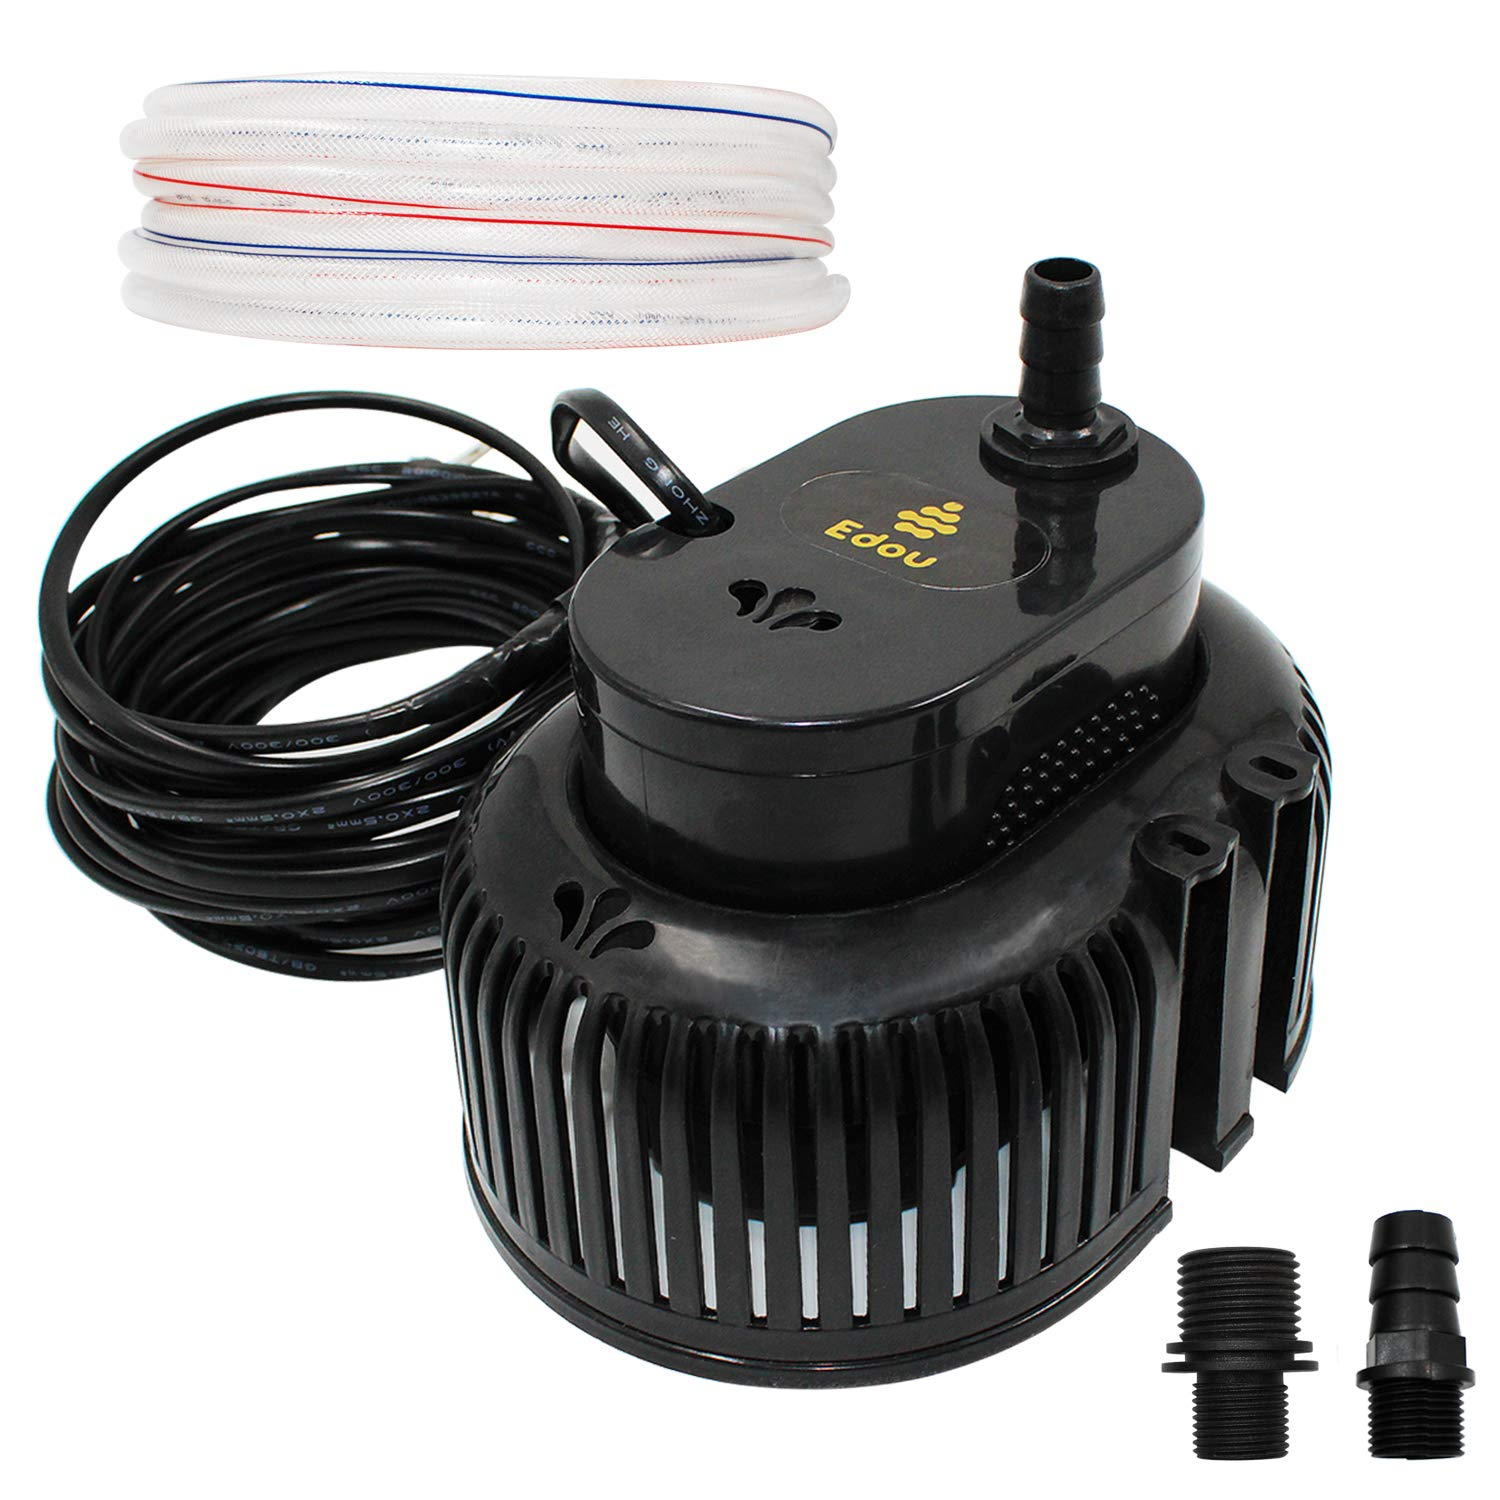 EDOU 850 GPH Swimming Pool Cover Pump Above Ground,Including 16' Drainage Hose and 3 Adapters,Ideal for Water Removal,Black